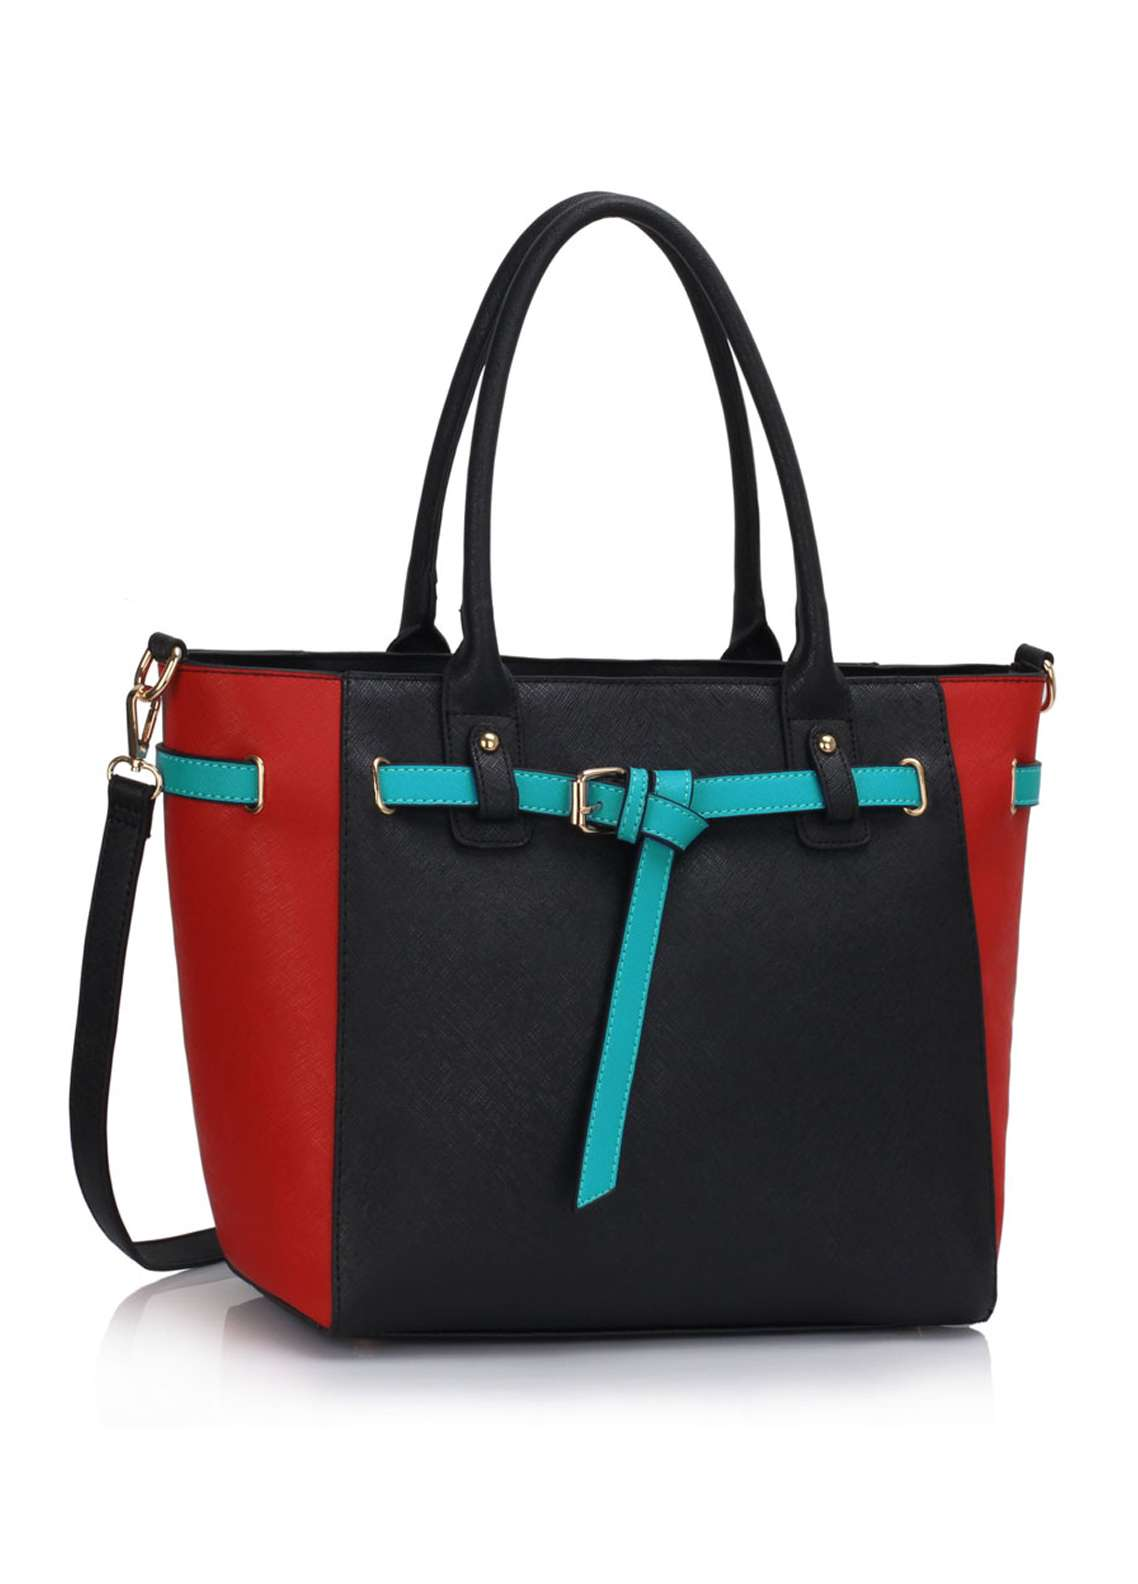 Fashion OnlyFaux Leather Tote  Bags  for Women  Multi with Buckle Belts